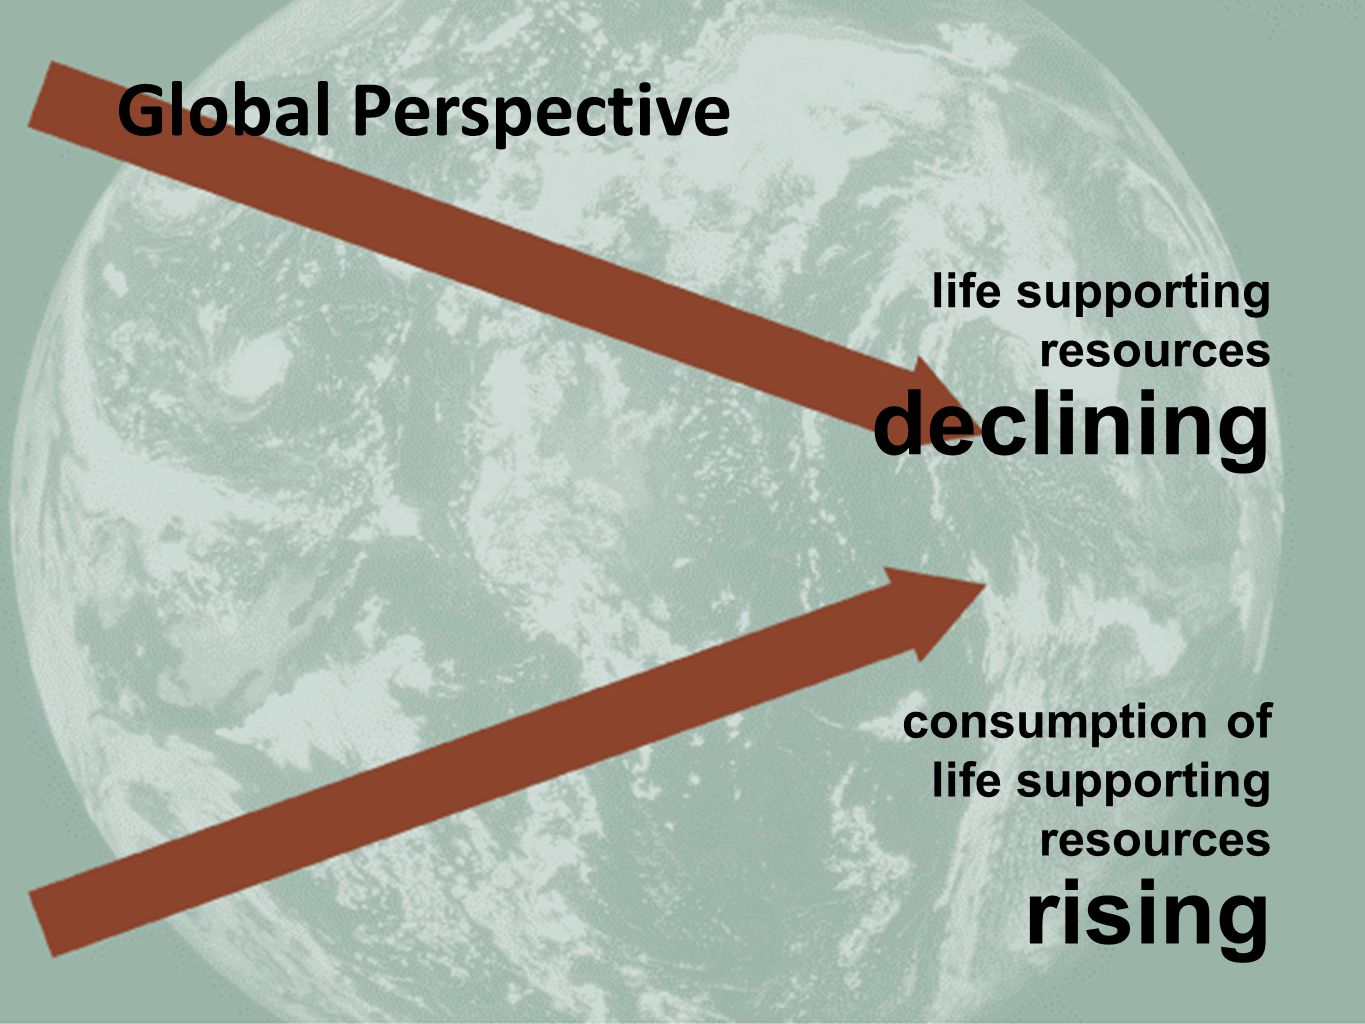 declining rising Global Perspective life supporting resources